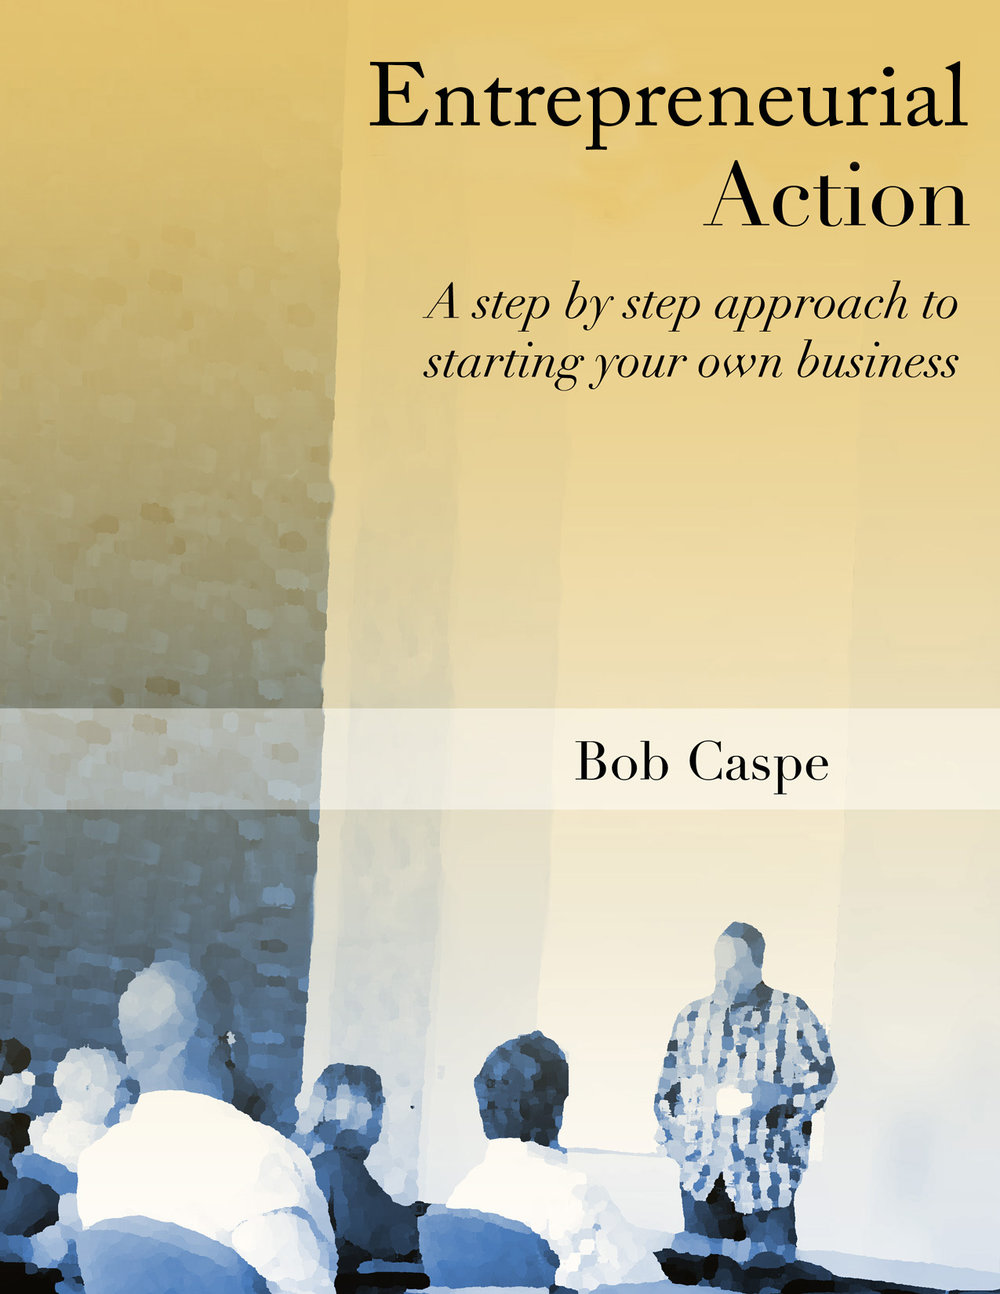 Entrepreneurial Action Version 2.5.12